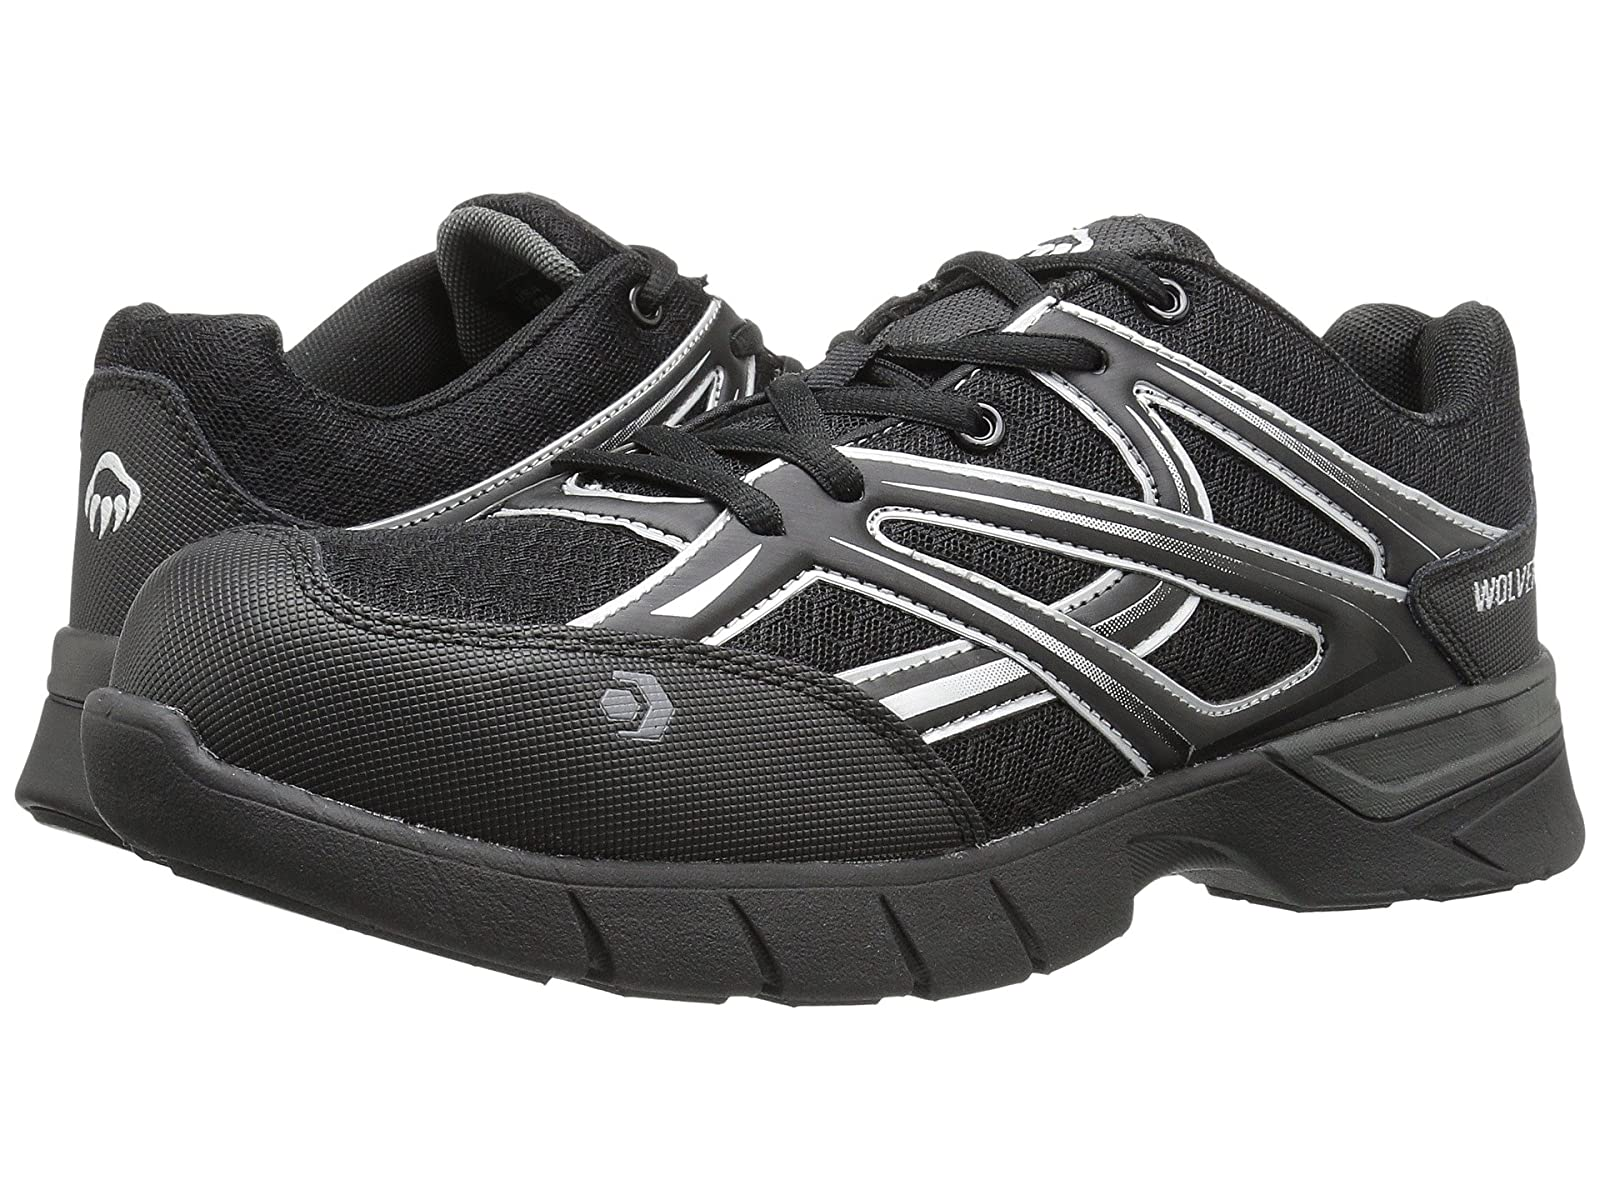 Wolverine Jetstream CarbonMAX Safety ToeAtmospheric grades have affordable shoes